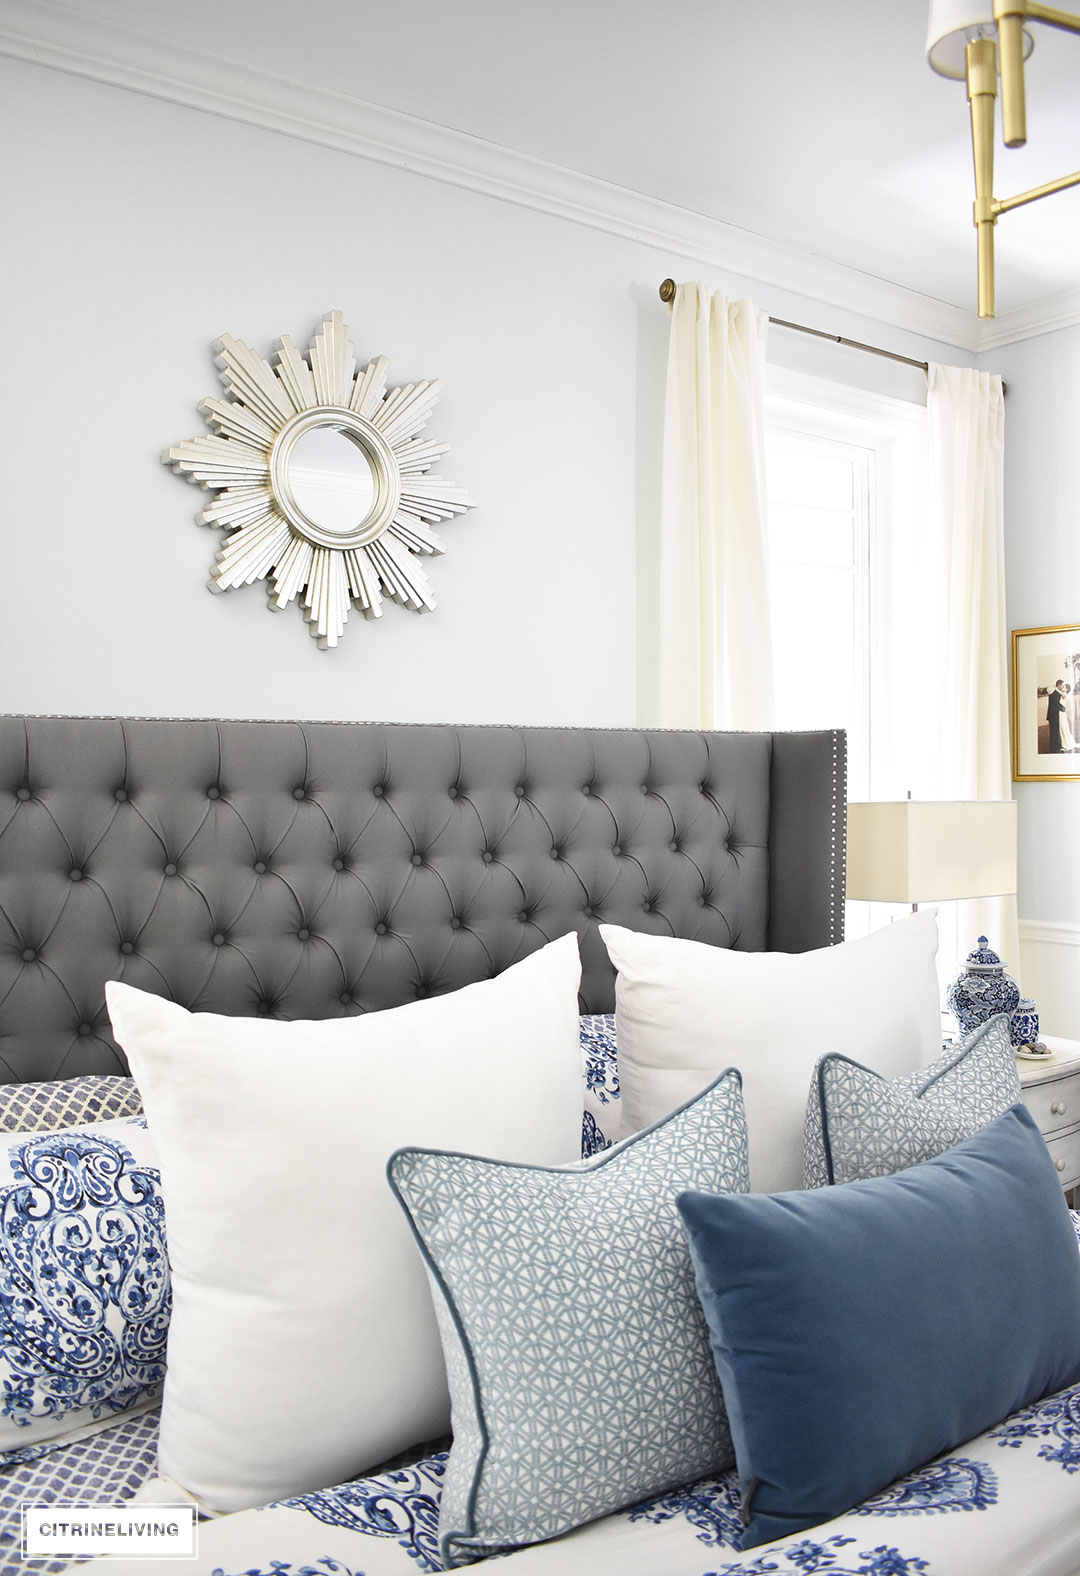 A sunburst mirror is a chic and classic addition to any space! This beautiful blue and white bedroom accented with a mix of cool and warm metals is elegant, warm and inviting. A metallic sunburst mirror as the perfect finishing touch.